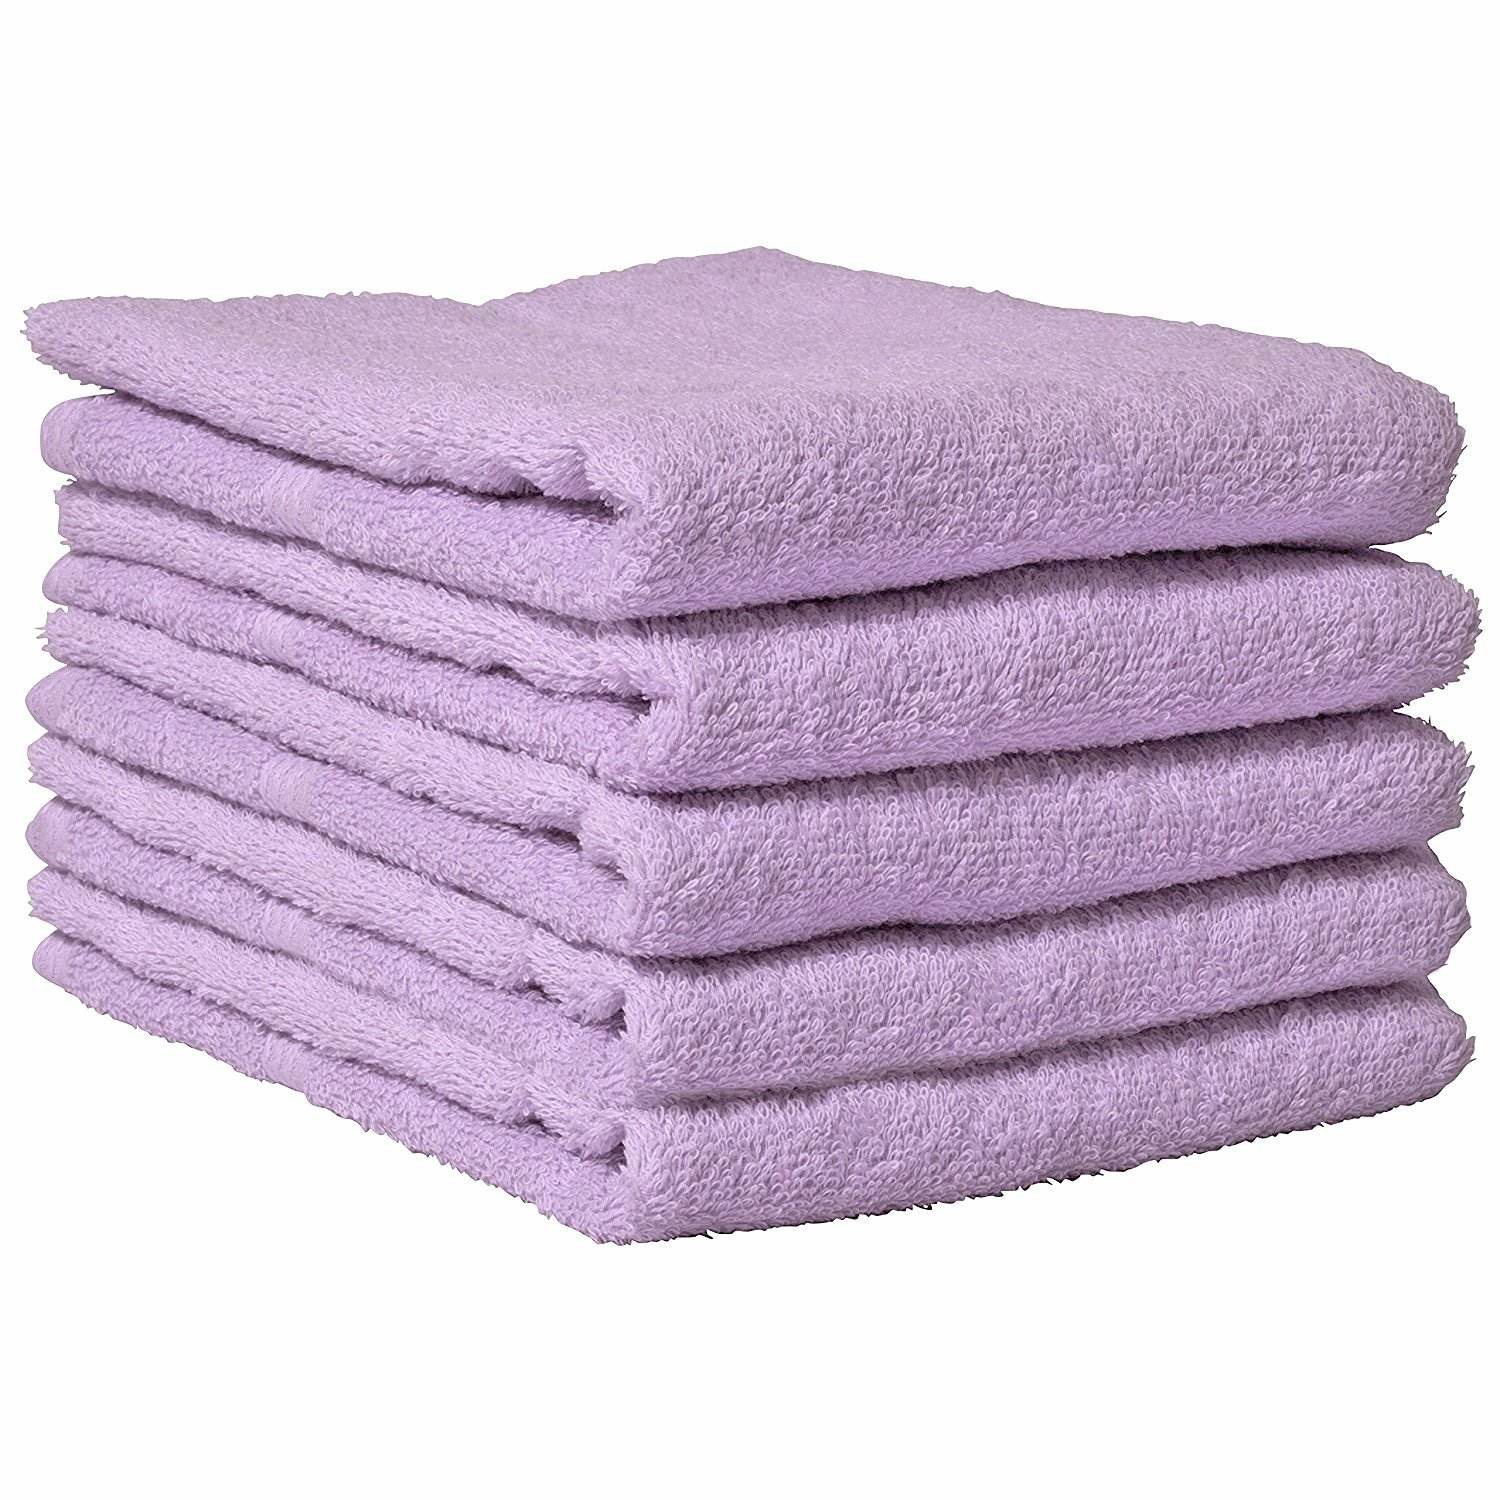 Cheap price thin towel Daily Towel made in Japan Osaka Sensyu cotton 100% Face towel lilac light purple